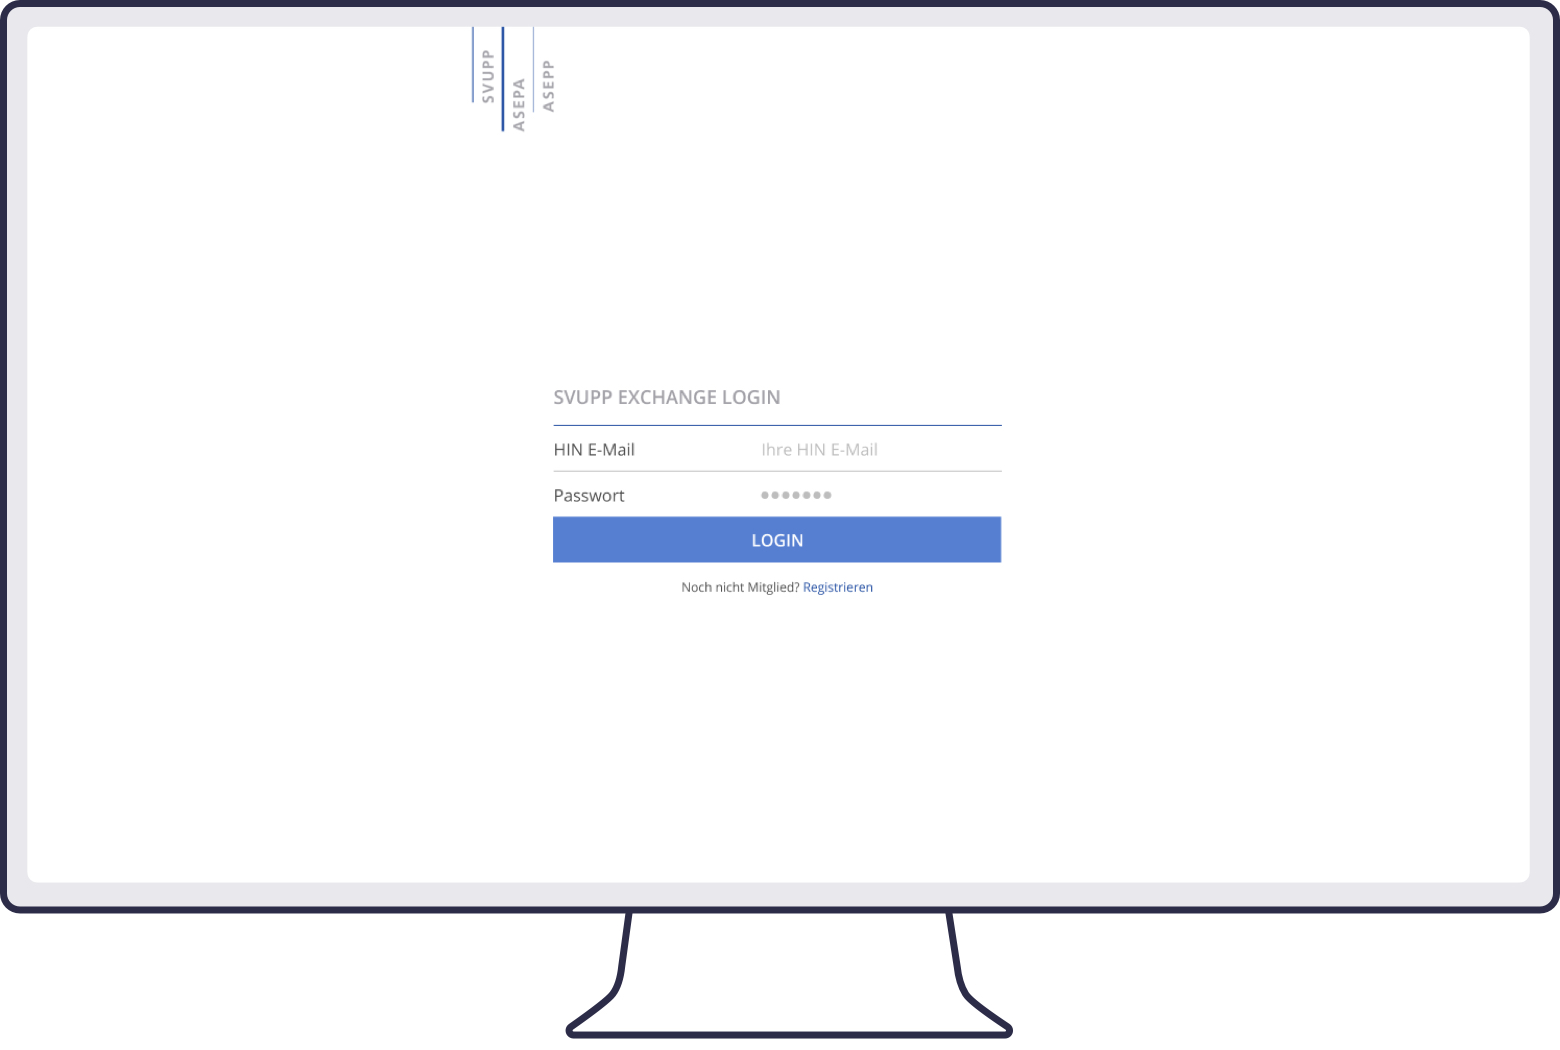 Screenshot of SVUPP login